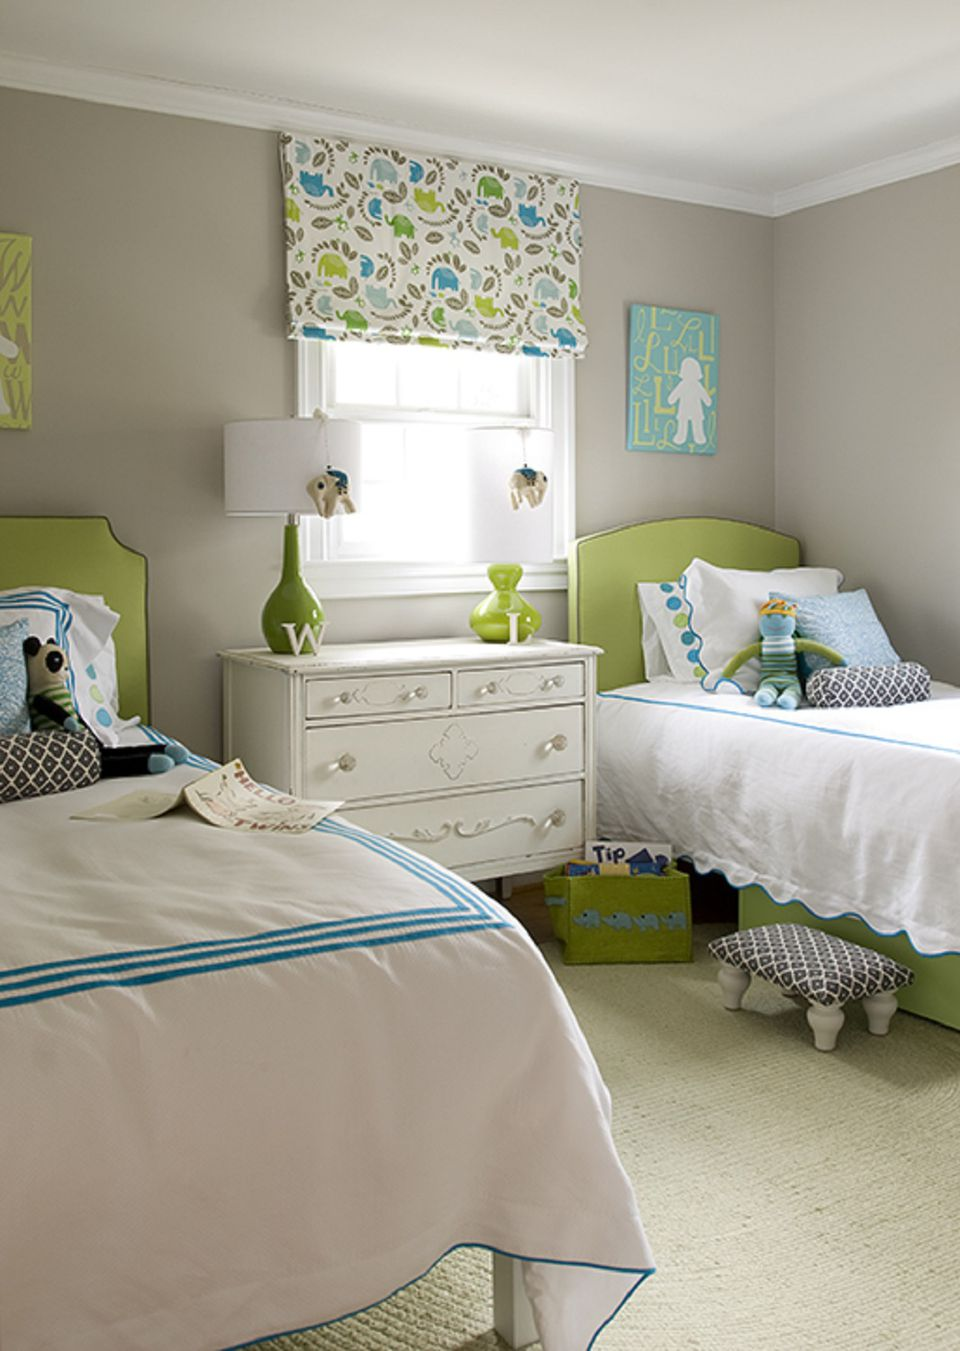 You might be left wondering where to put all of your belongings or how to make the space livable. Ideas for Decorating a Little Girl's Bedroom